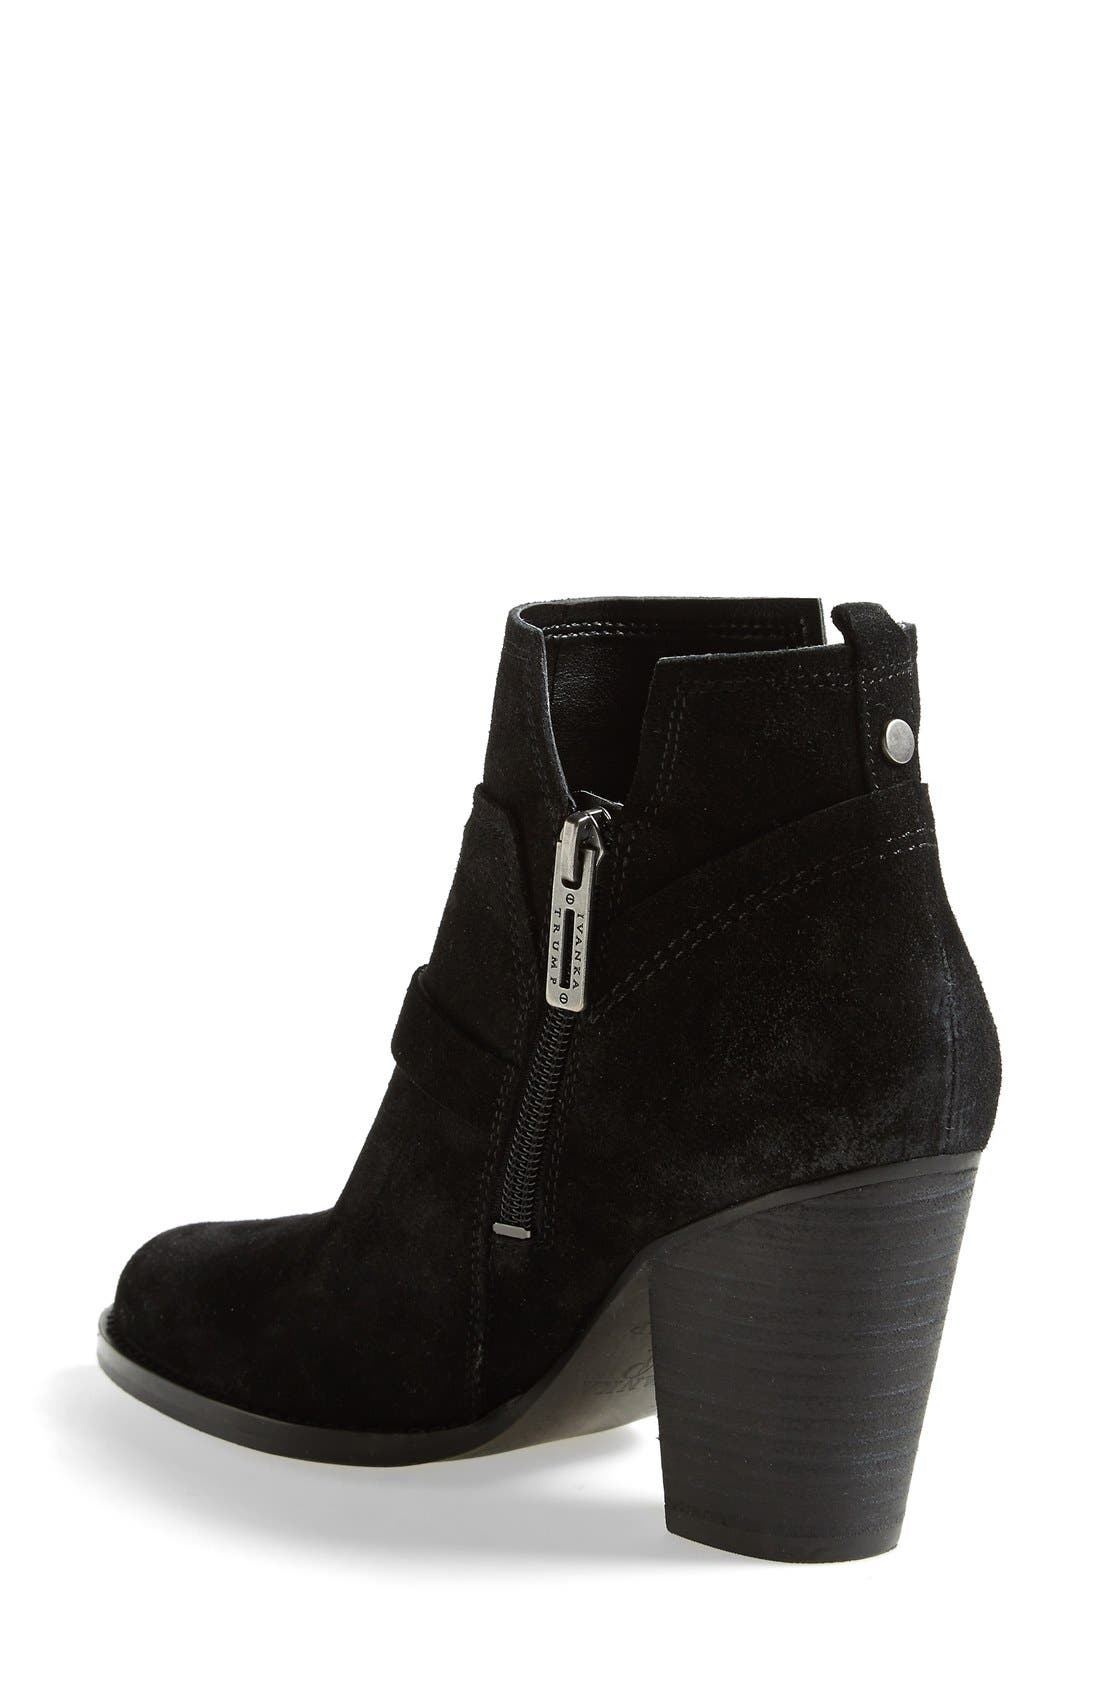 IVANKA TRUMP,                             'Frankly' Belted Round Toe Bootie,                             Alternate thumbnail 4, color,                             001